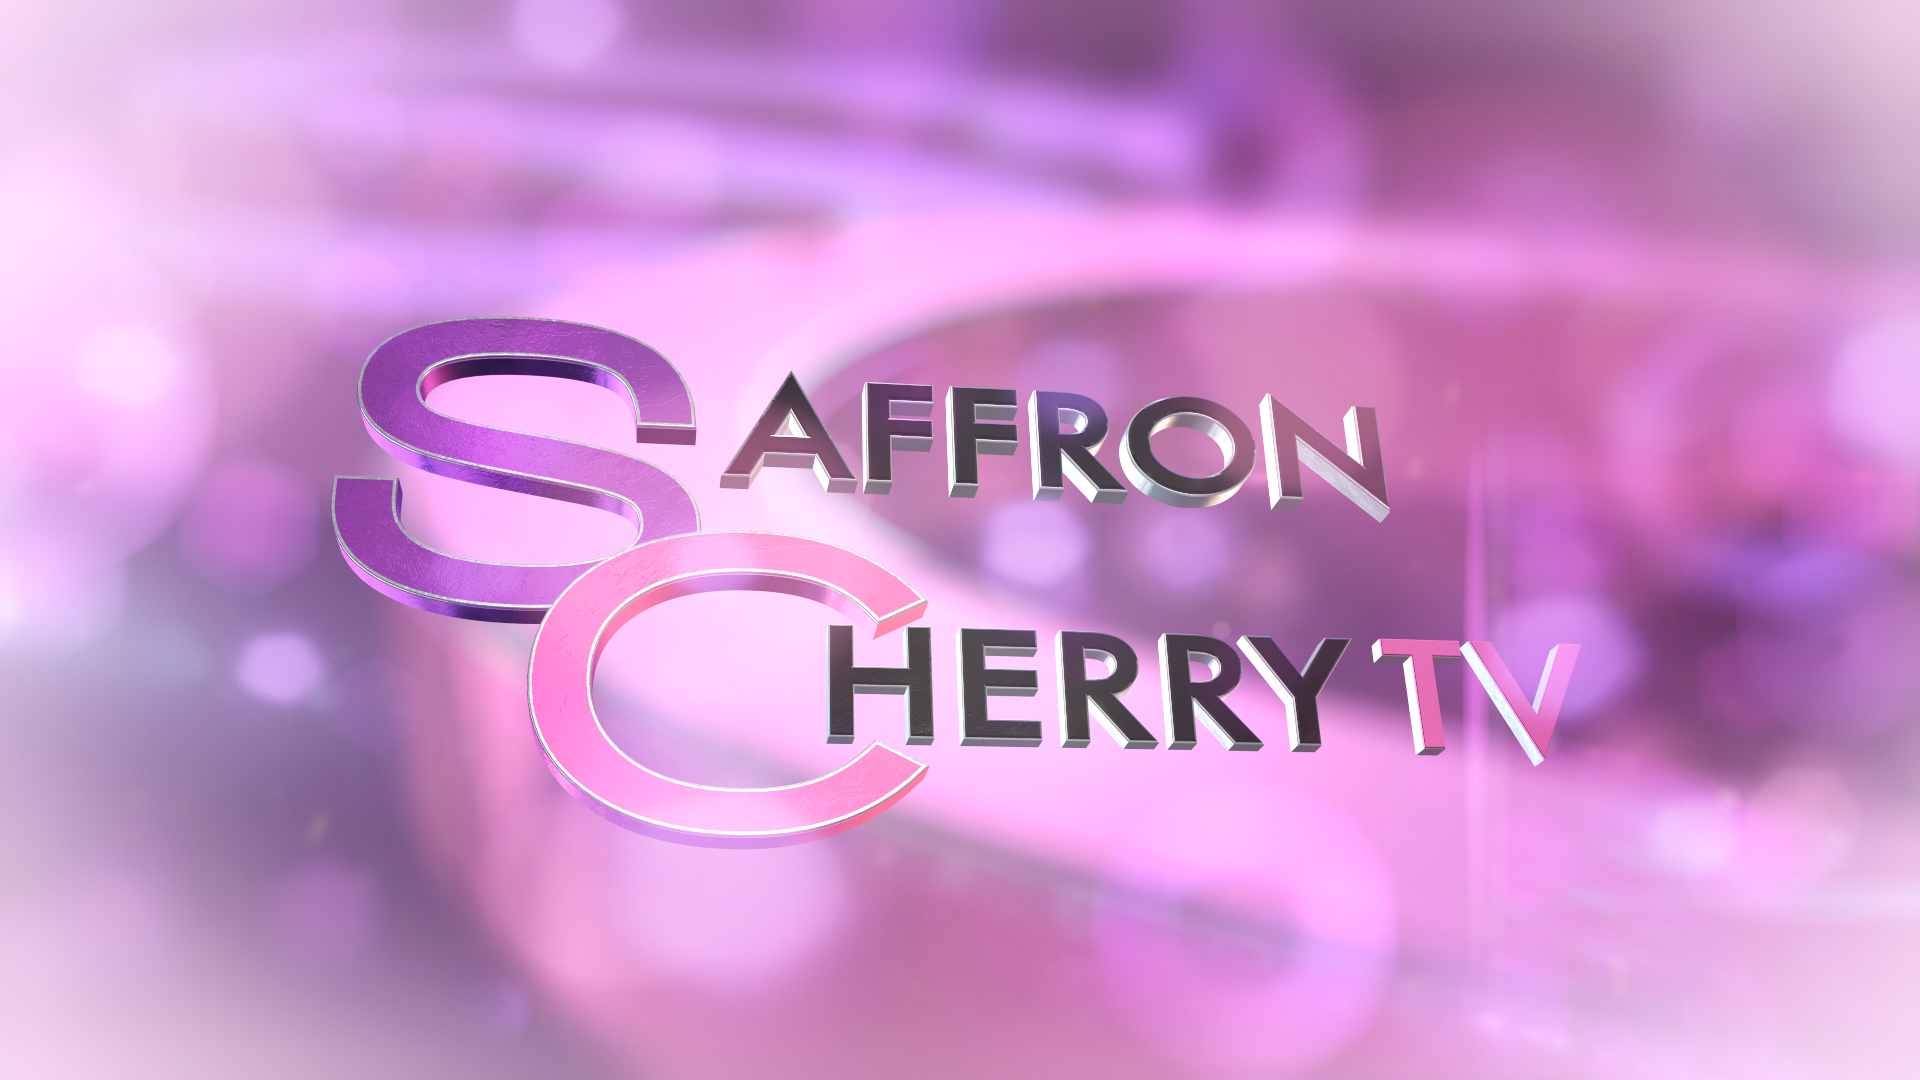 Click the image above to download our hi-res Saffron Cherry Wallpaper